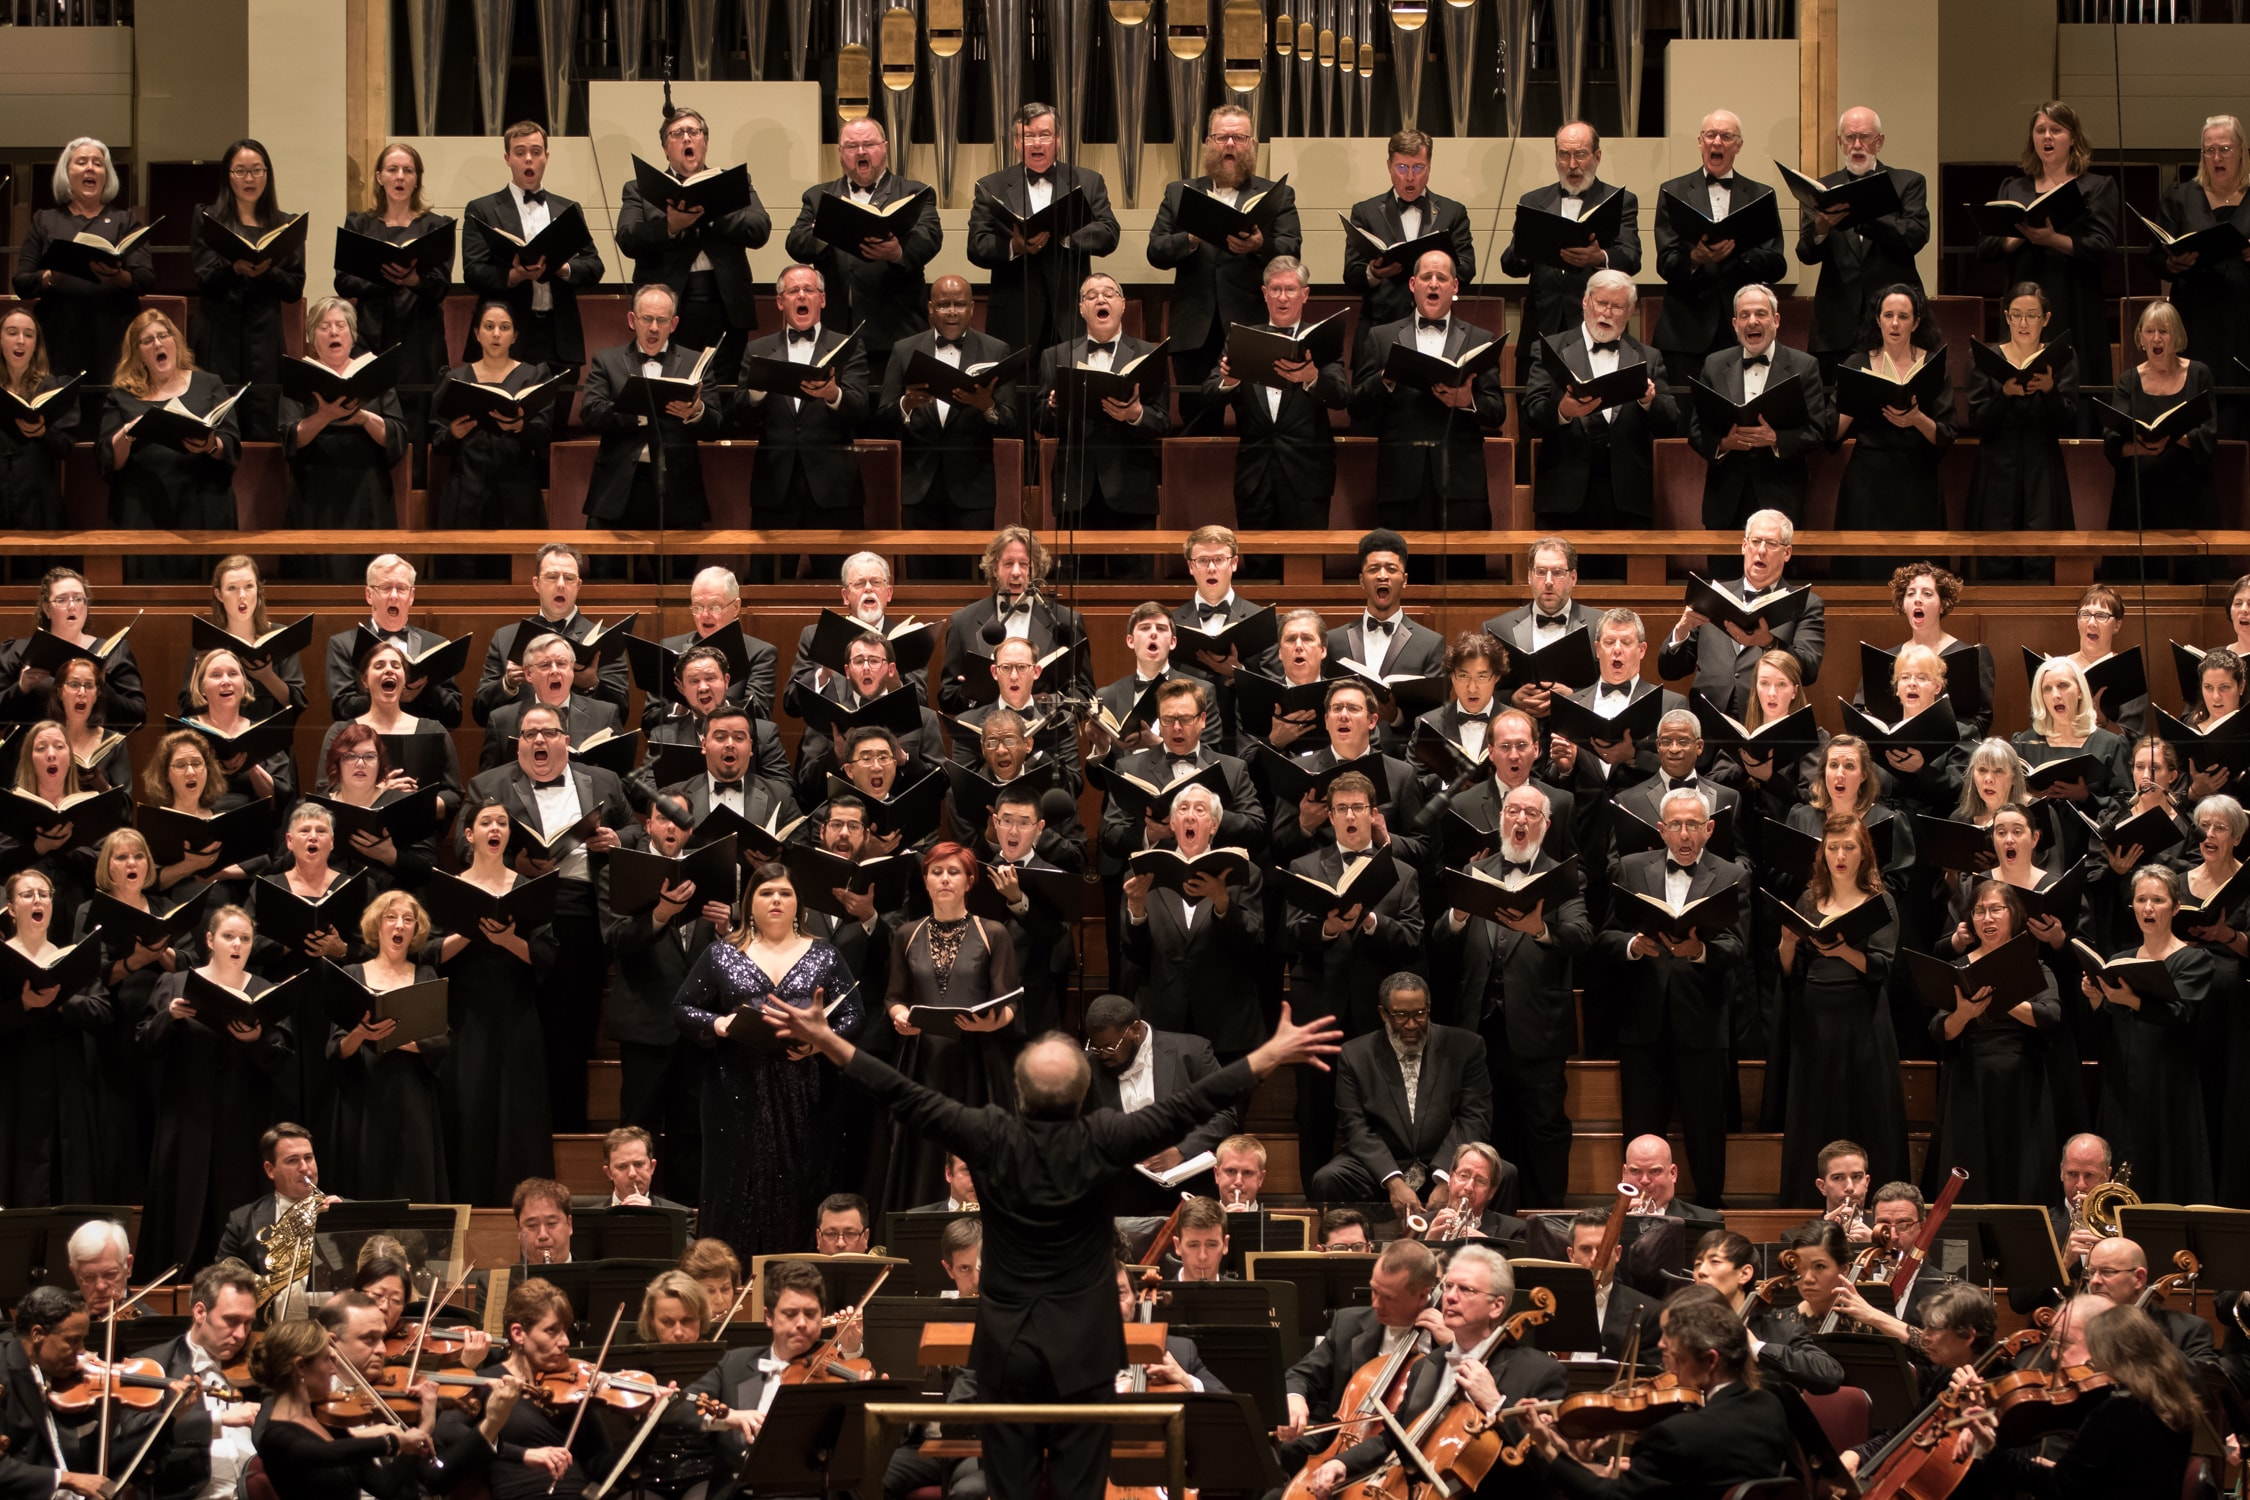 """Maestro Noseda conducts the NSO performing Verdi's """"Requiem"""" in March of 2018. Photo by Scott Suchman."""